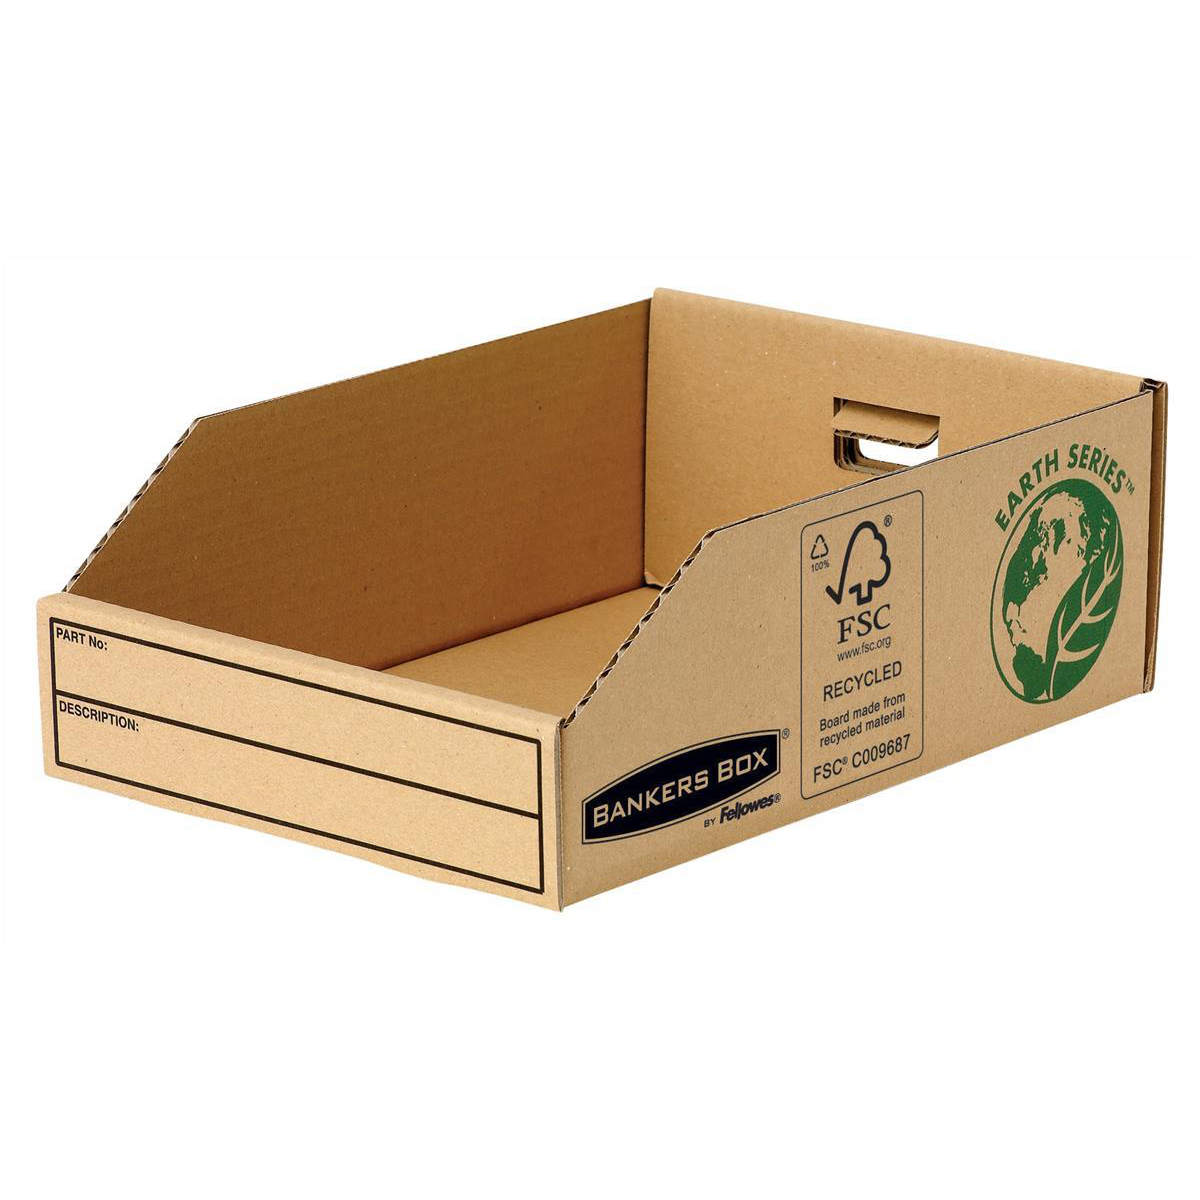 Containers Bankers Box by Fellowes Parts Bin Corrugated Fibreboard Packed Flat W200xD280xH102mm Ref 07355 Pack 50